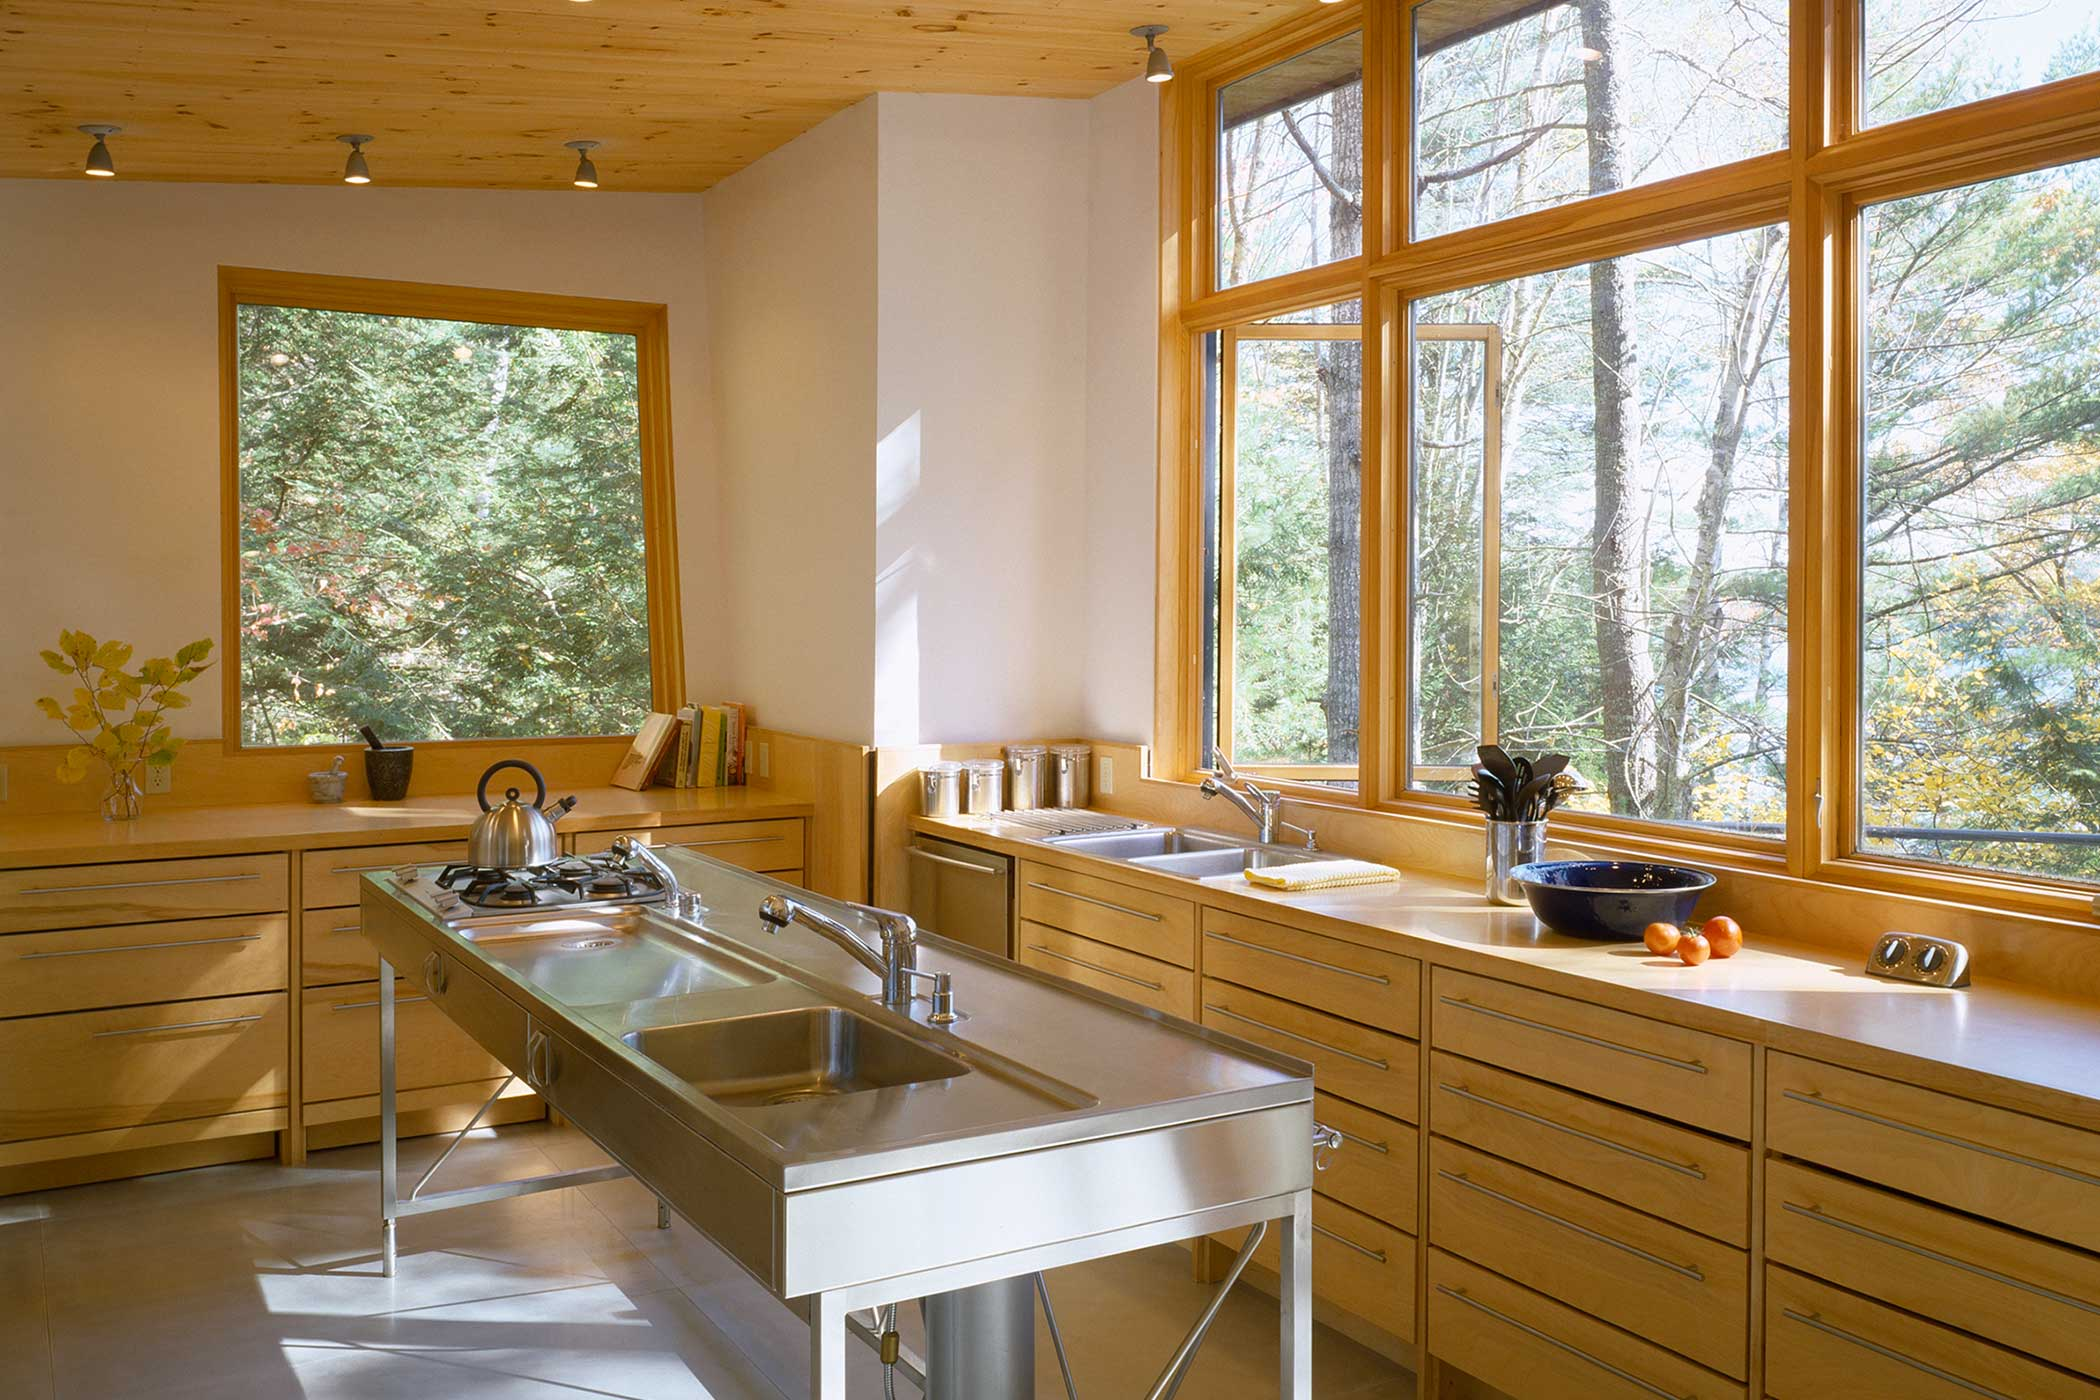 'Lake House - Kitchen' by Christopher Campbell Architecture